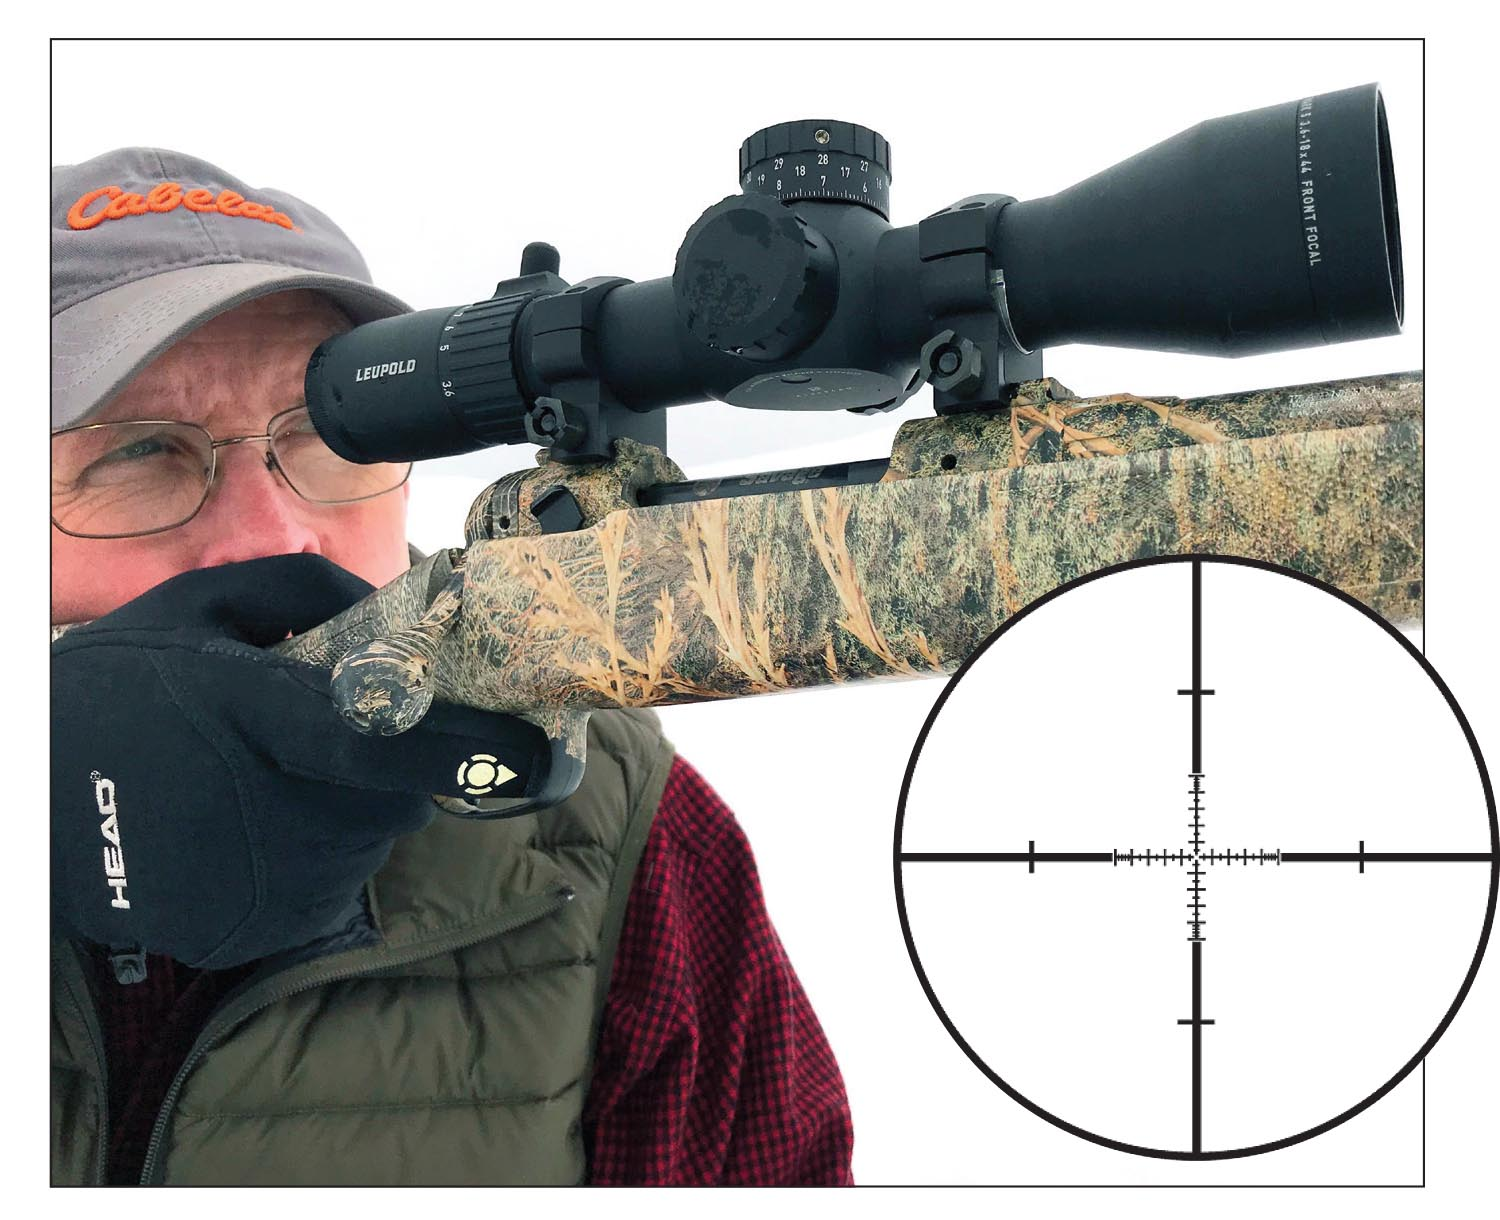 The Leupold Mark 5HD 3.6-18x 44mm scope with Tactical Milling Reticle, measuring roughly 12 inches in length, fits well on a short-action rifle.